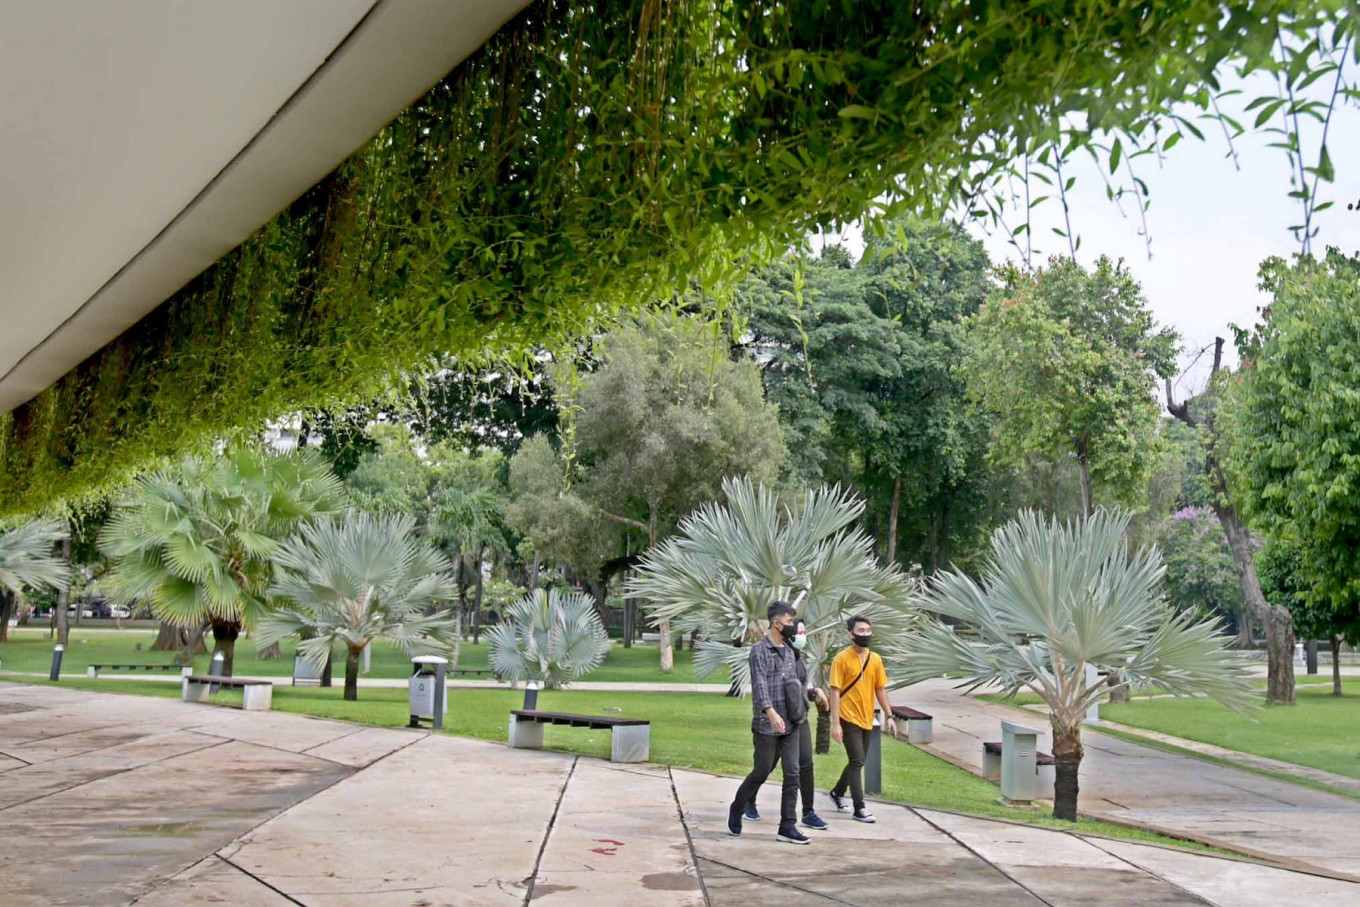 Residents walk around Banteng Park in Jakarta on Oct. 18. The Jakarta administration has reopened green public spaces in the city during the transitional large-scale social restrictions. JP/Wendra Ajistyatama